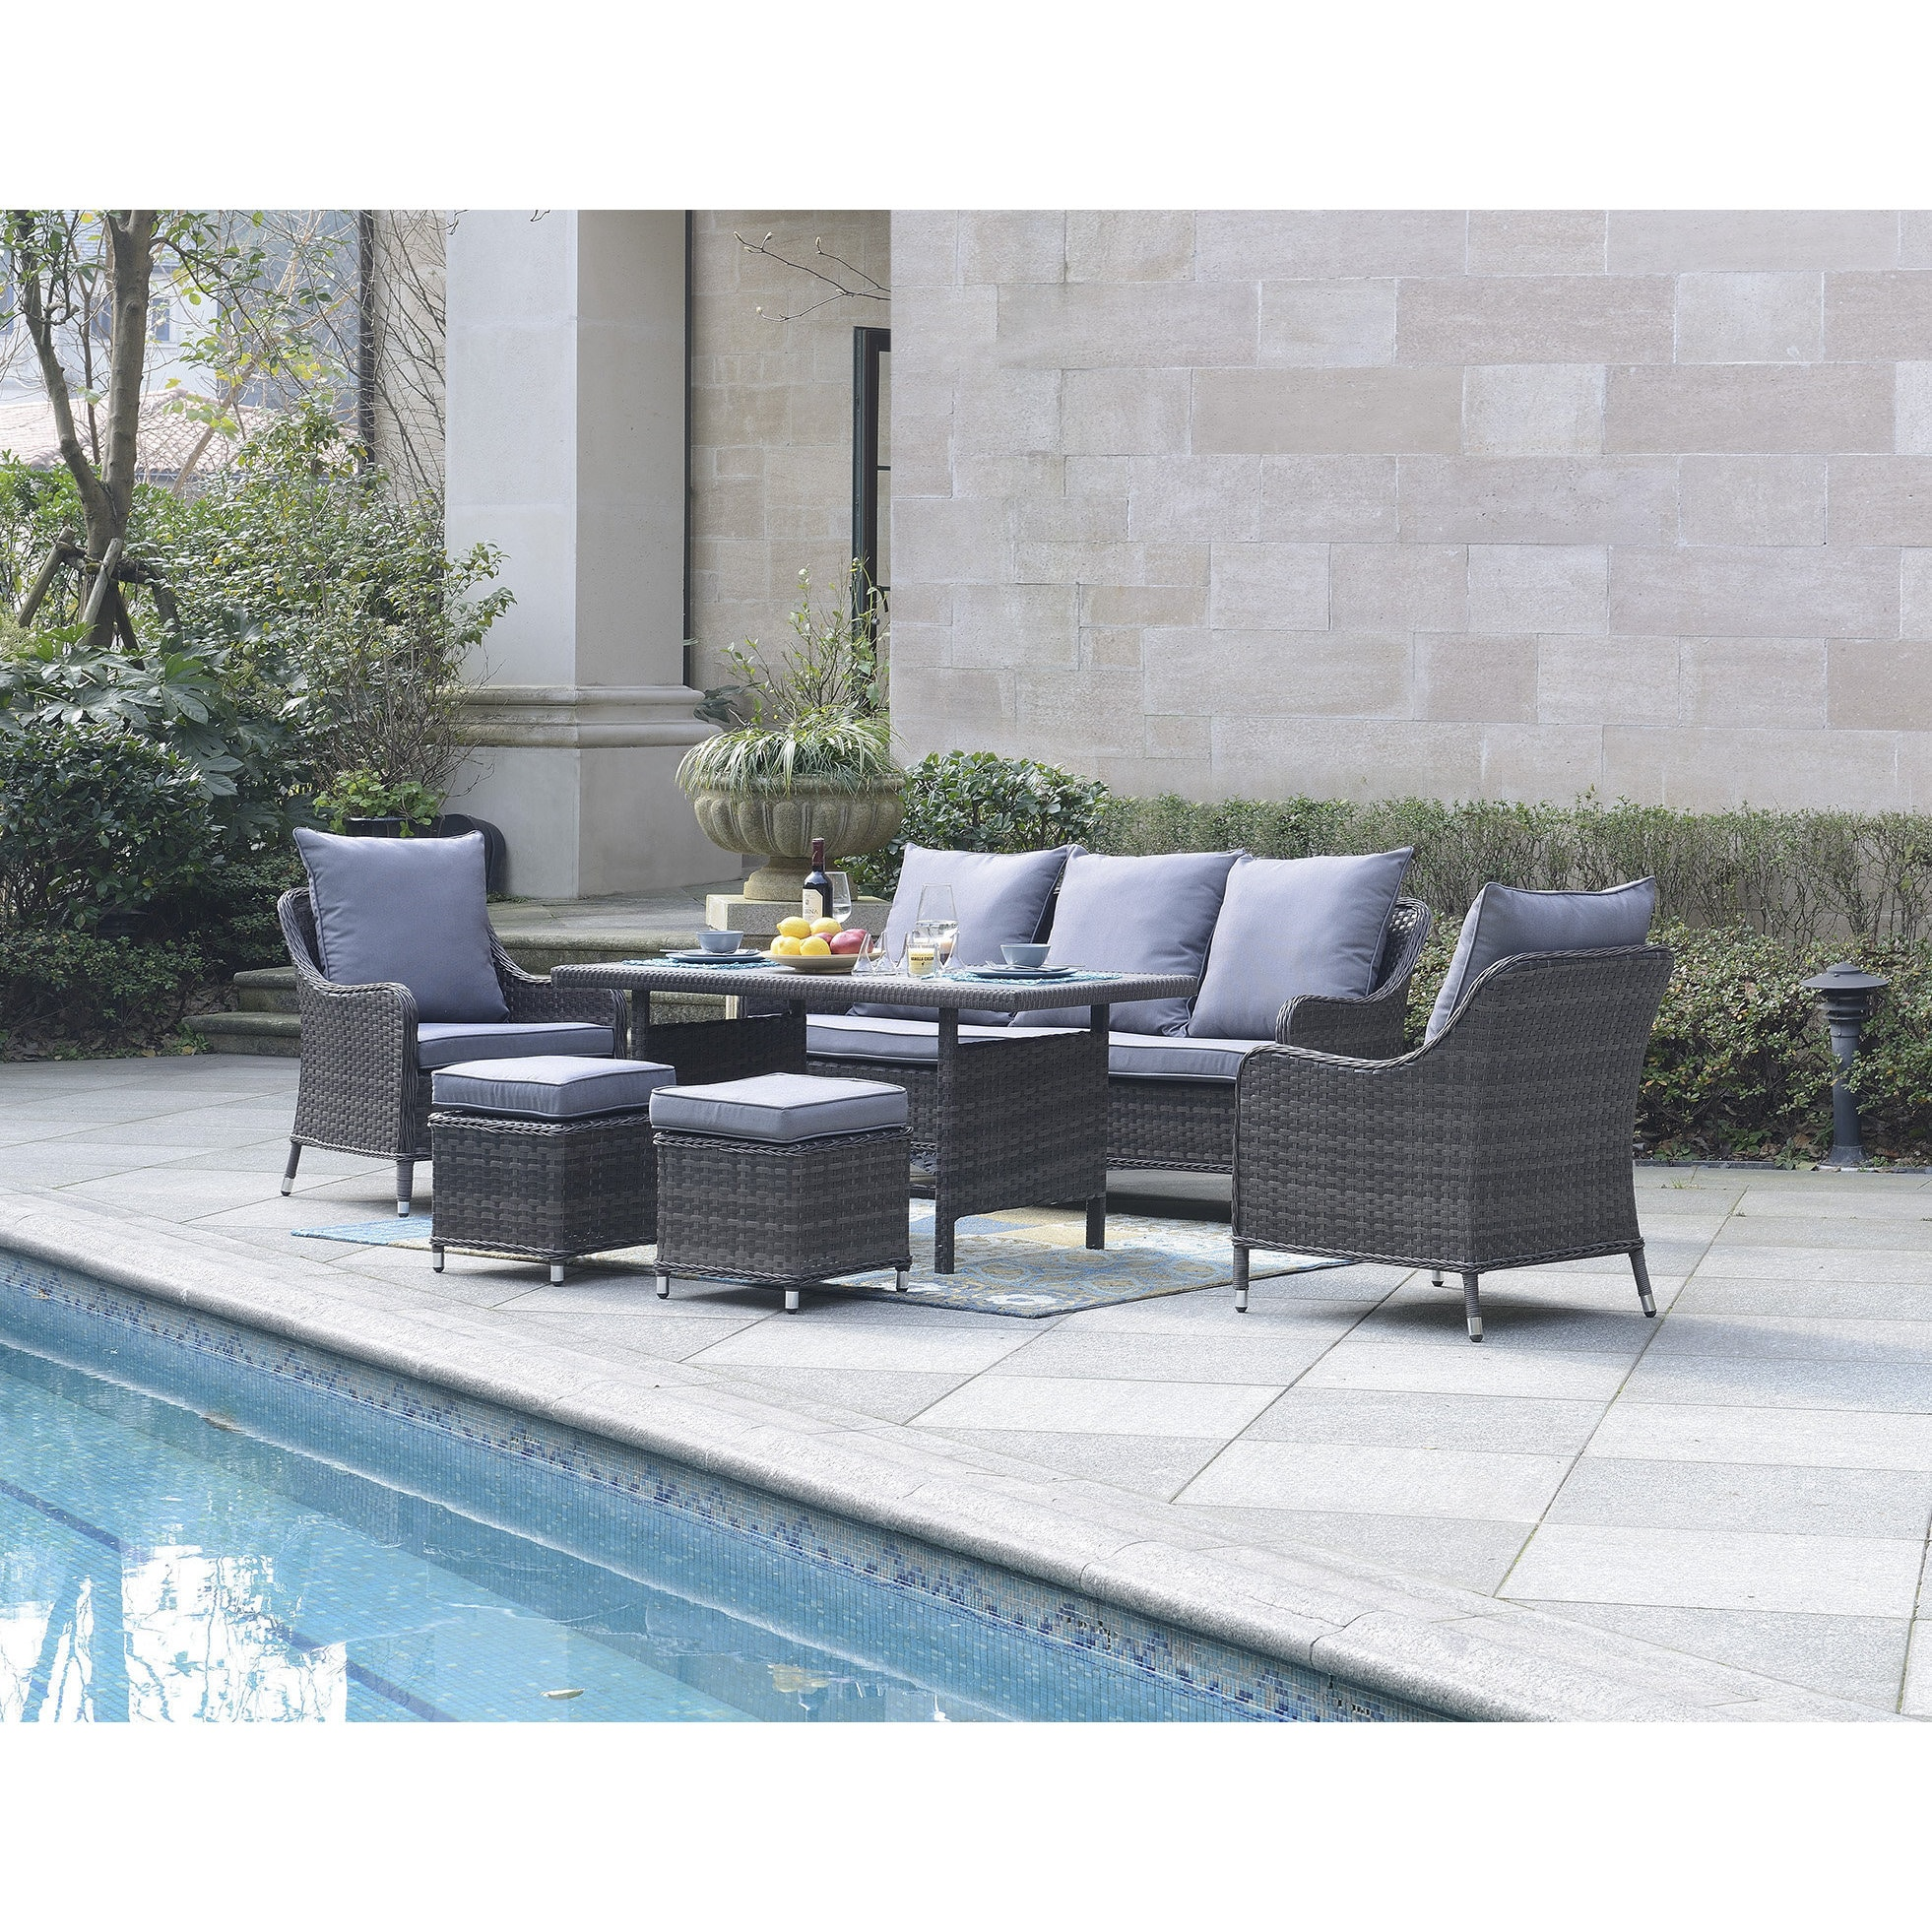 Dg Casa Maui 6 Piece Outdoor Dining Set Free Shipping Today 14230830